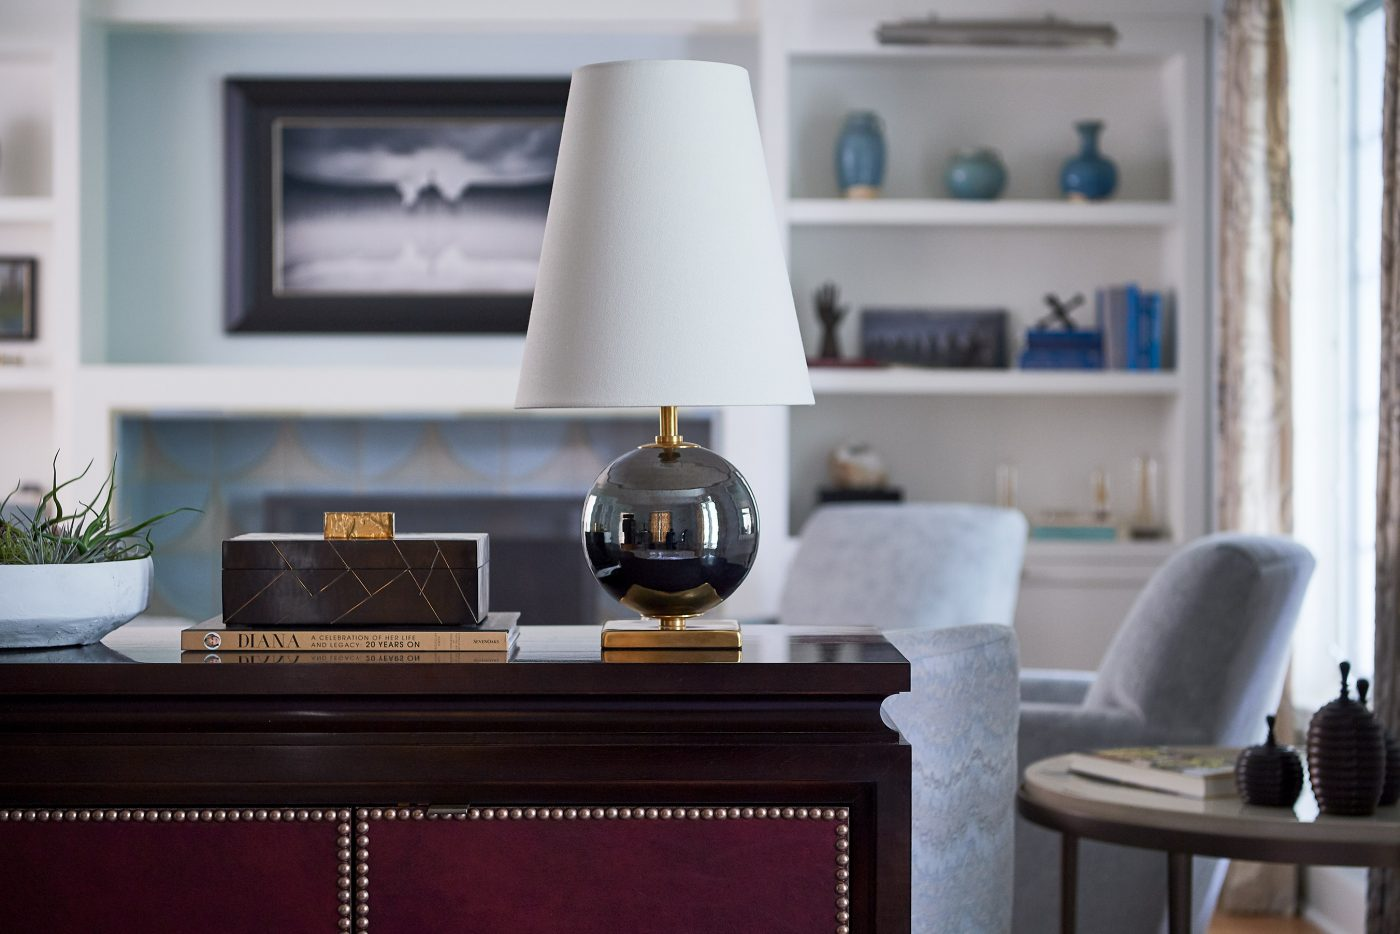 living room with a burgundy leather credenza and Circa lighting lamp in the foreground